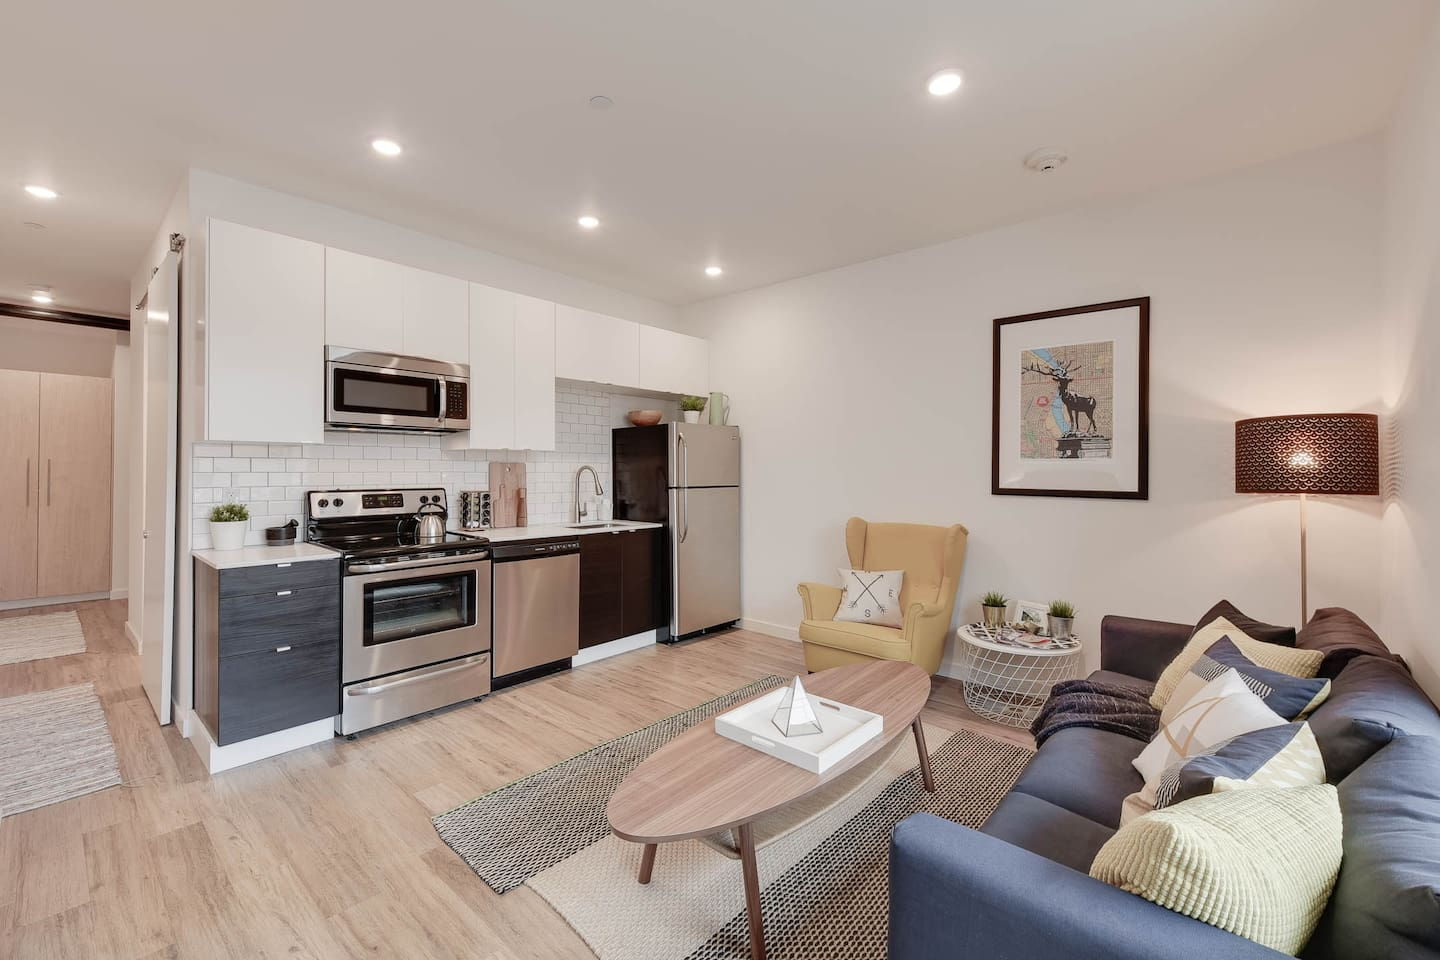 The ankeny loft apartments for rent in portland oregon united states solutioingenieria Image collections